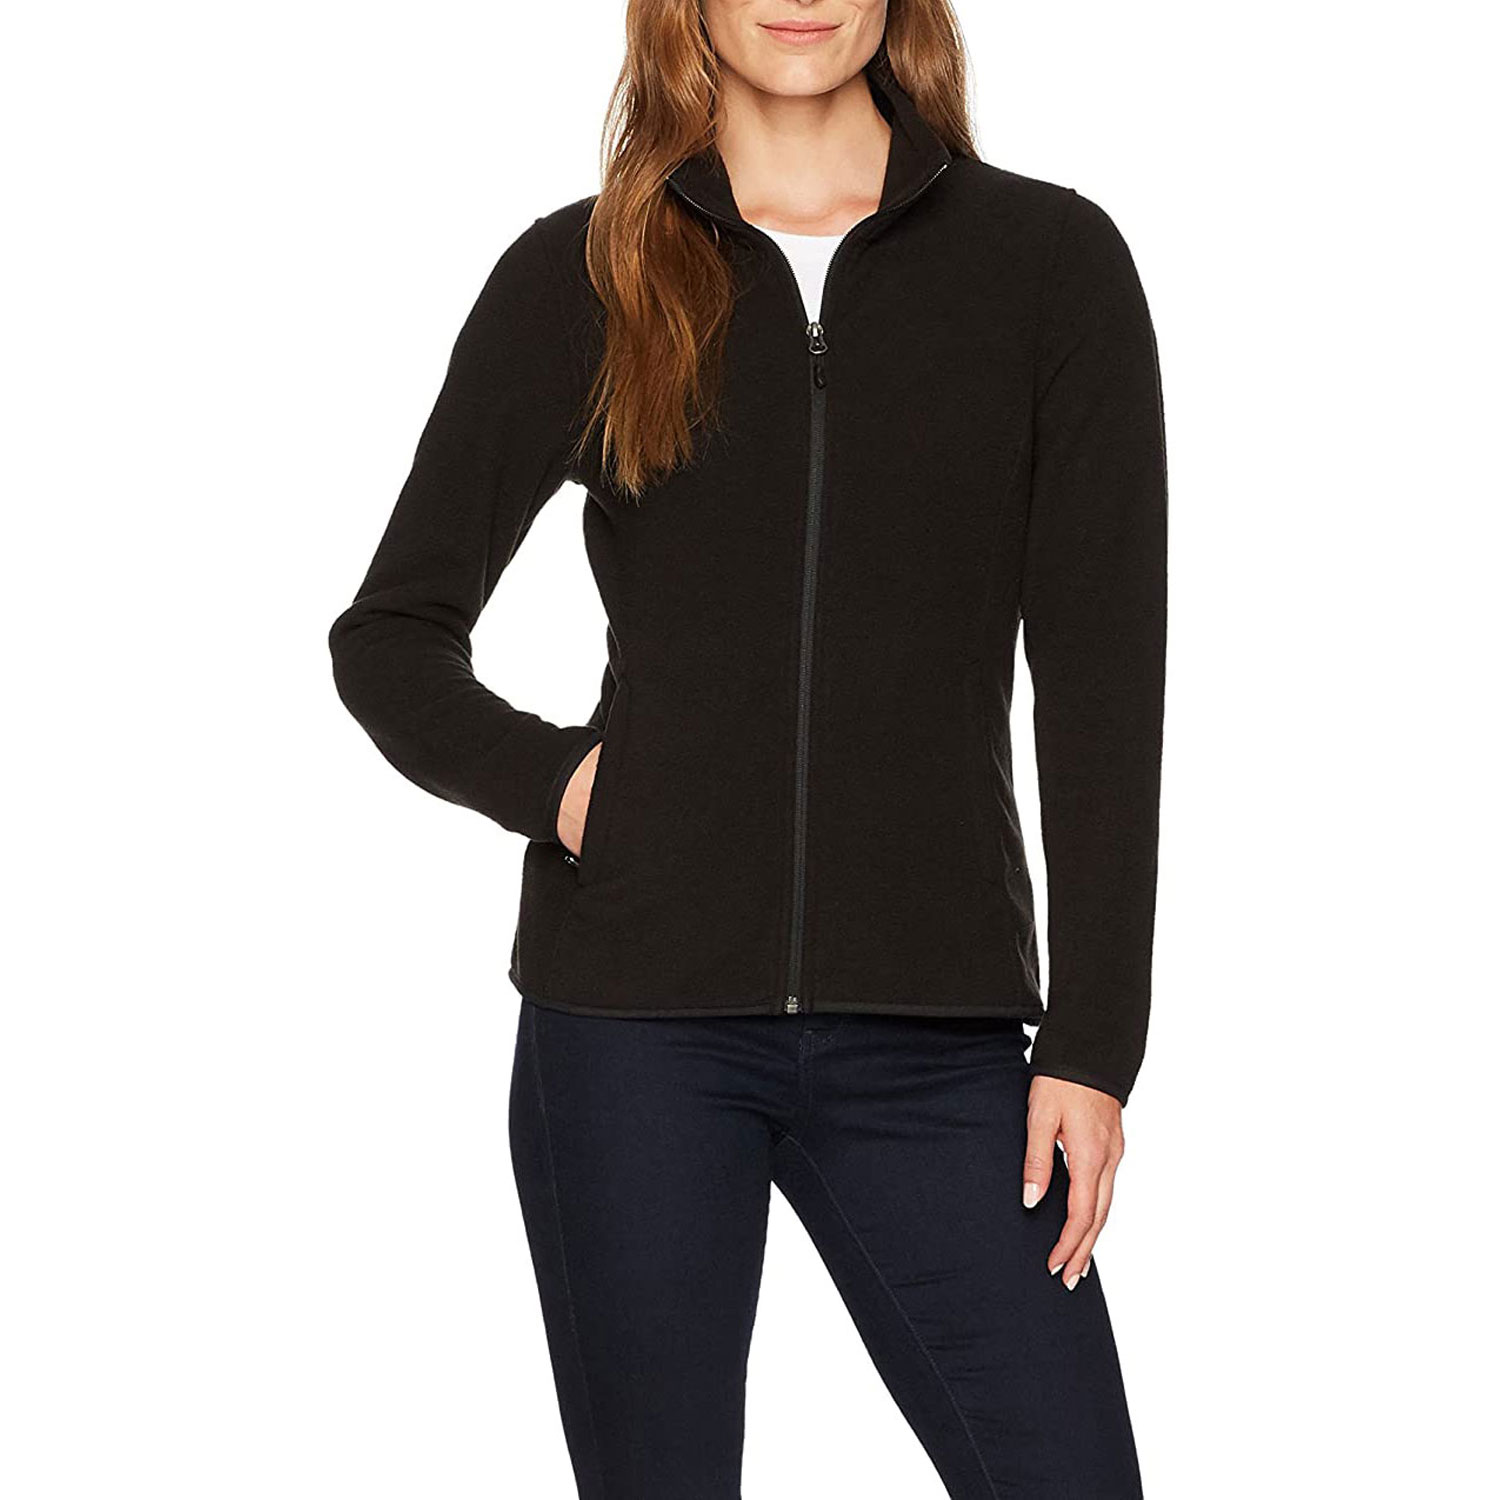 Amazon Essentials Women's Classic Fit Long-Sleeve Full-Zip Polar Soft Fleece Jacket: Clothing